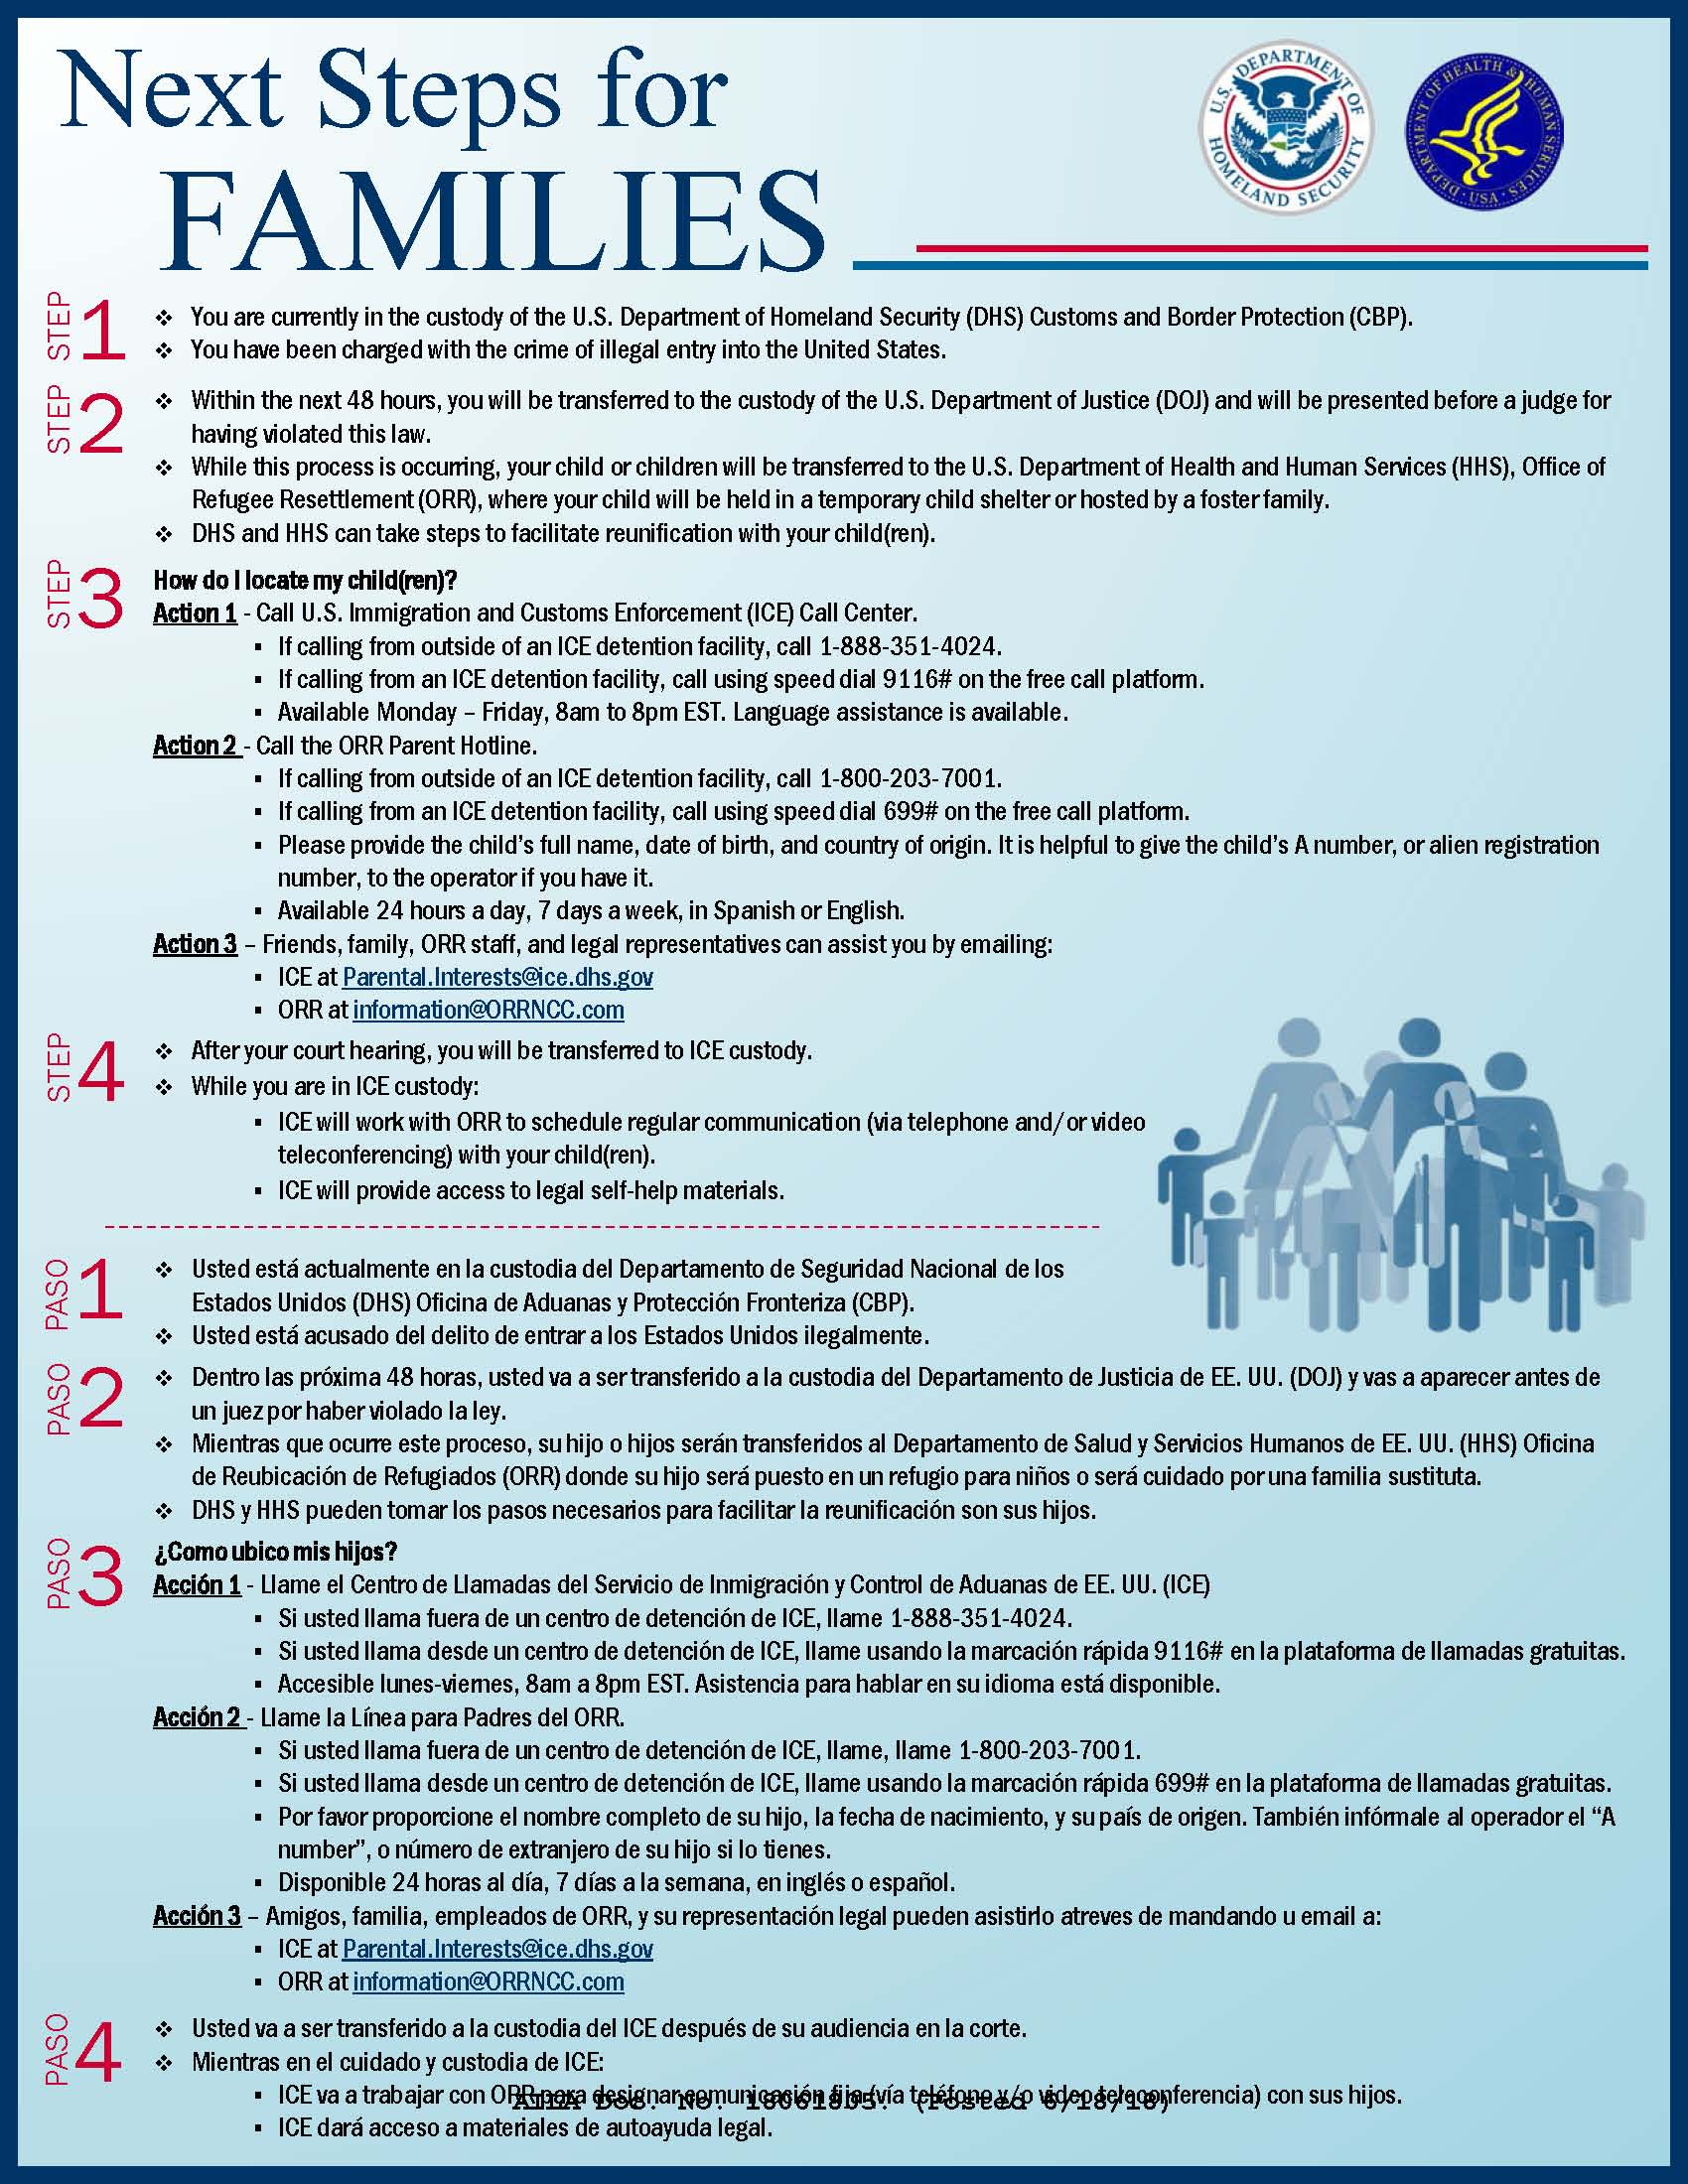 Handout on Next Steps for Families in DHS Custody 2